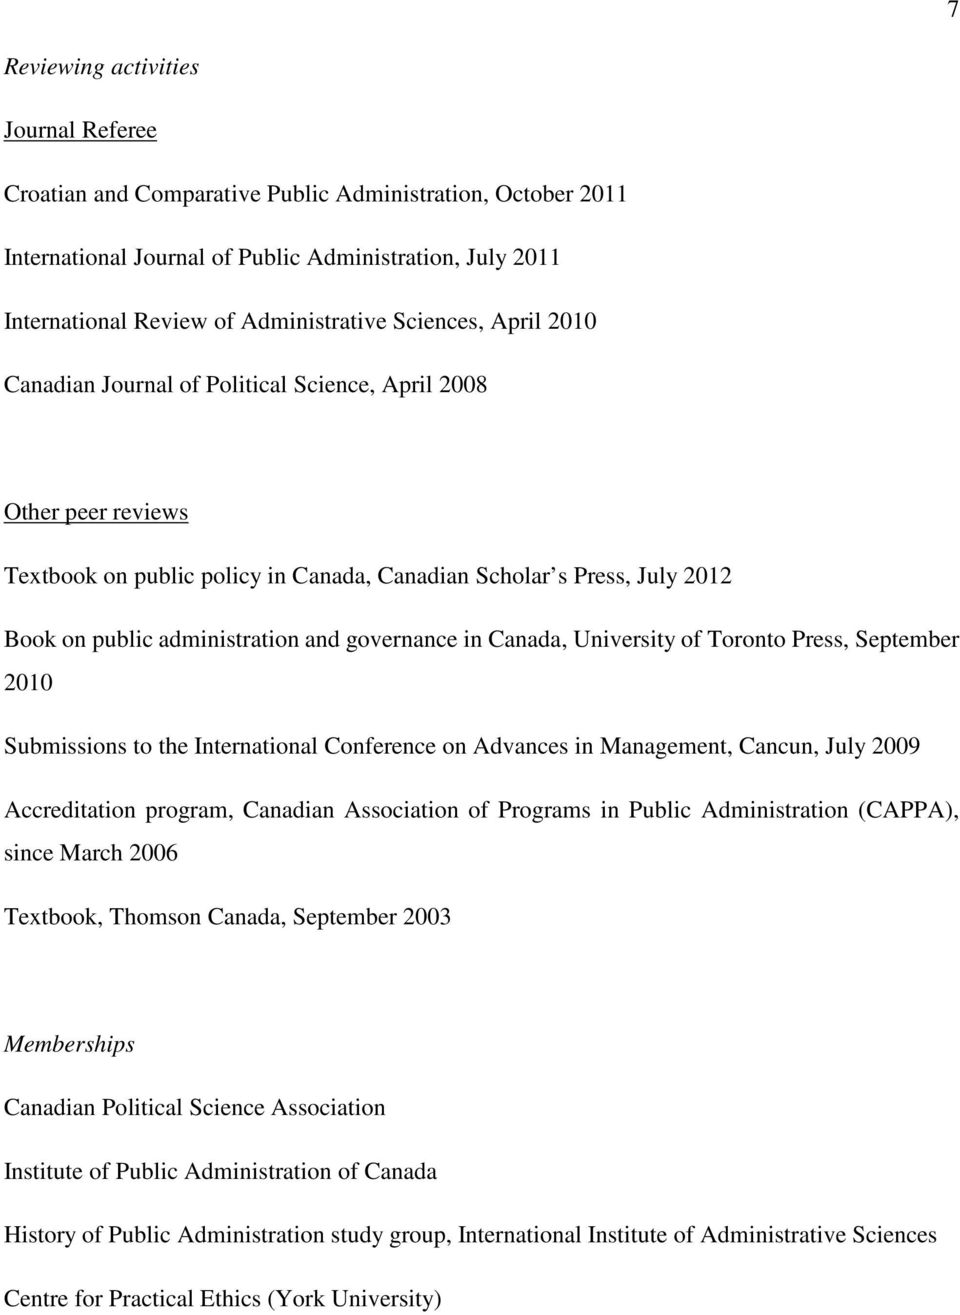 governance in Canada, University of Toronto Press, September 2010 Submissions to the International Conference on Advances in Management, Cancun, July 2009 Accreditation program, Canadian Association